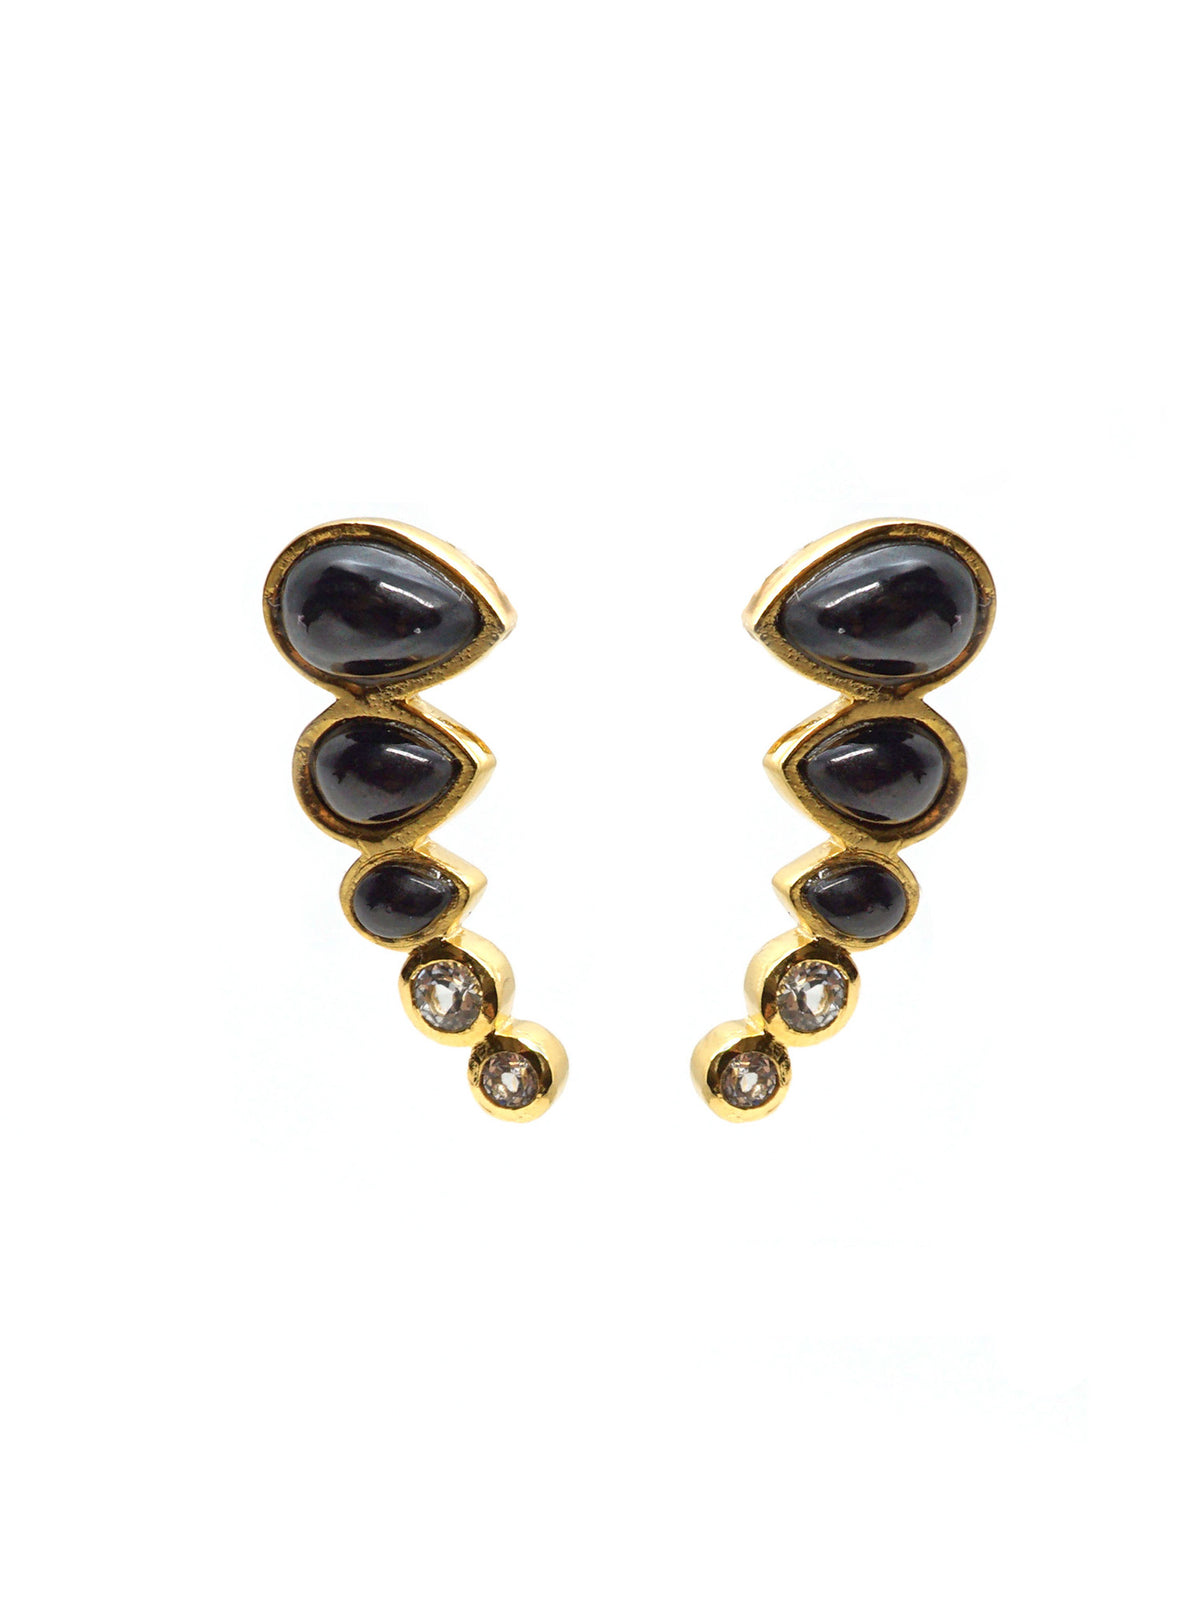 Dew Trio Earrings - Gold - Onyx